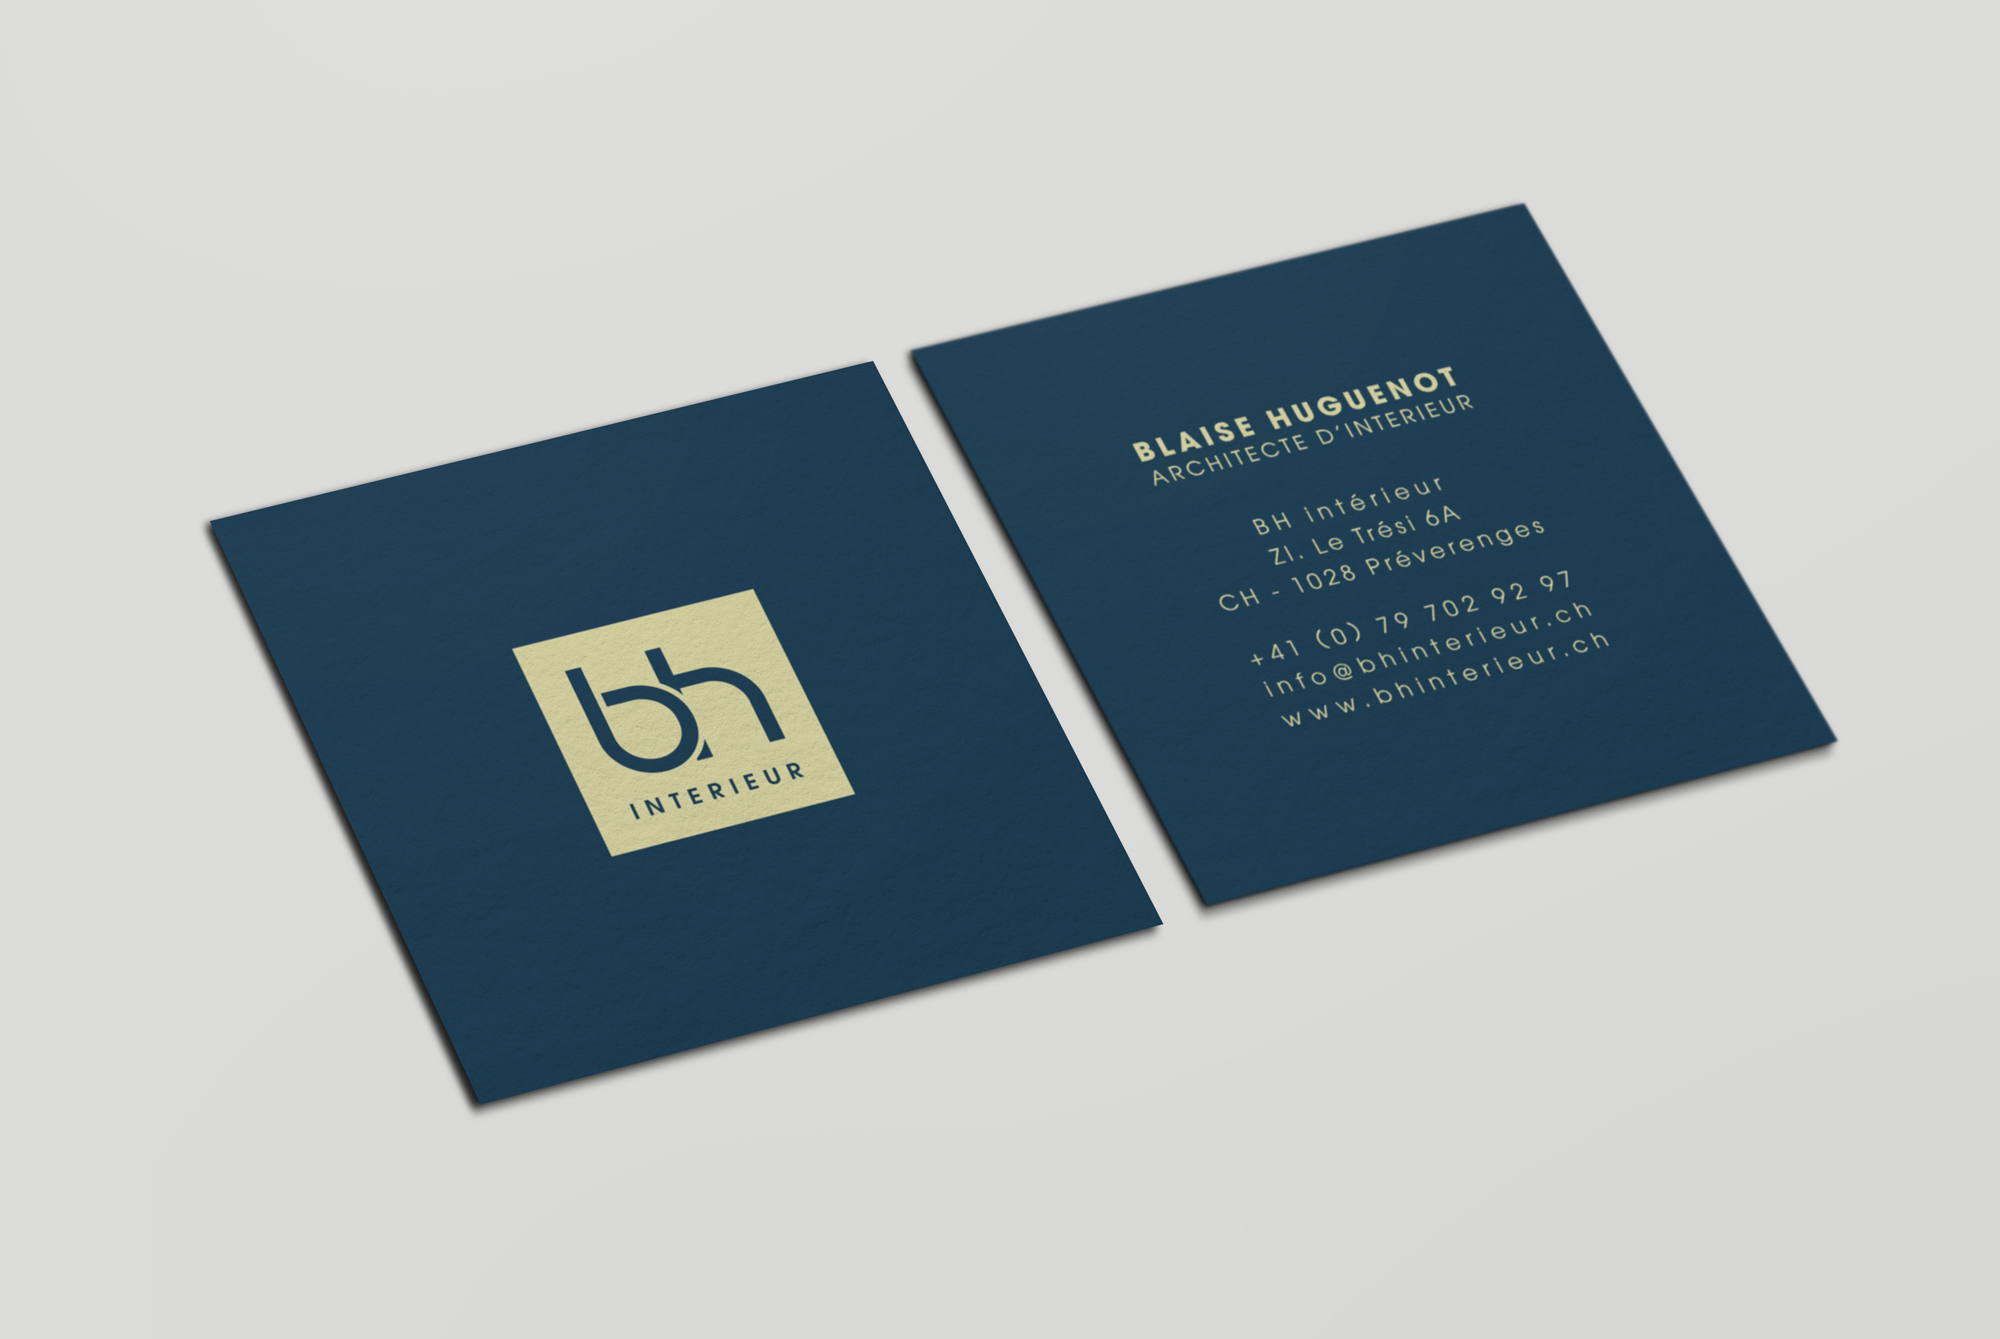 Carte de visite de bh interieur | Sandrine Pilloud